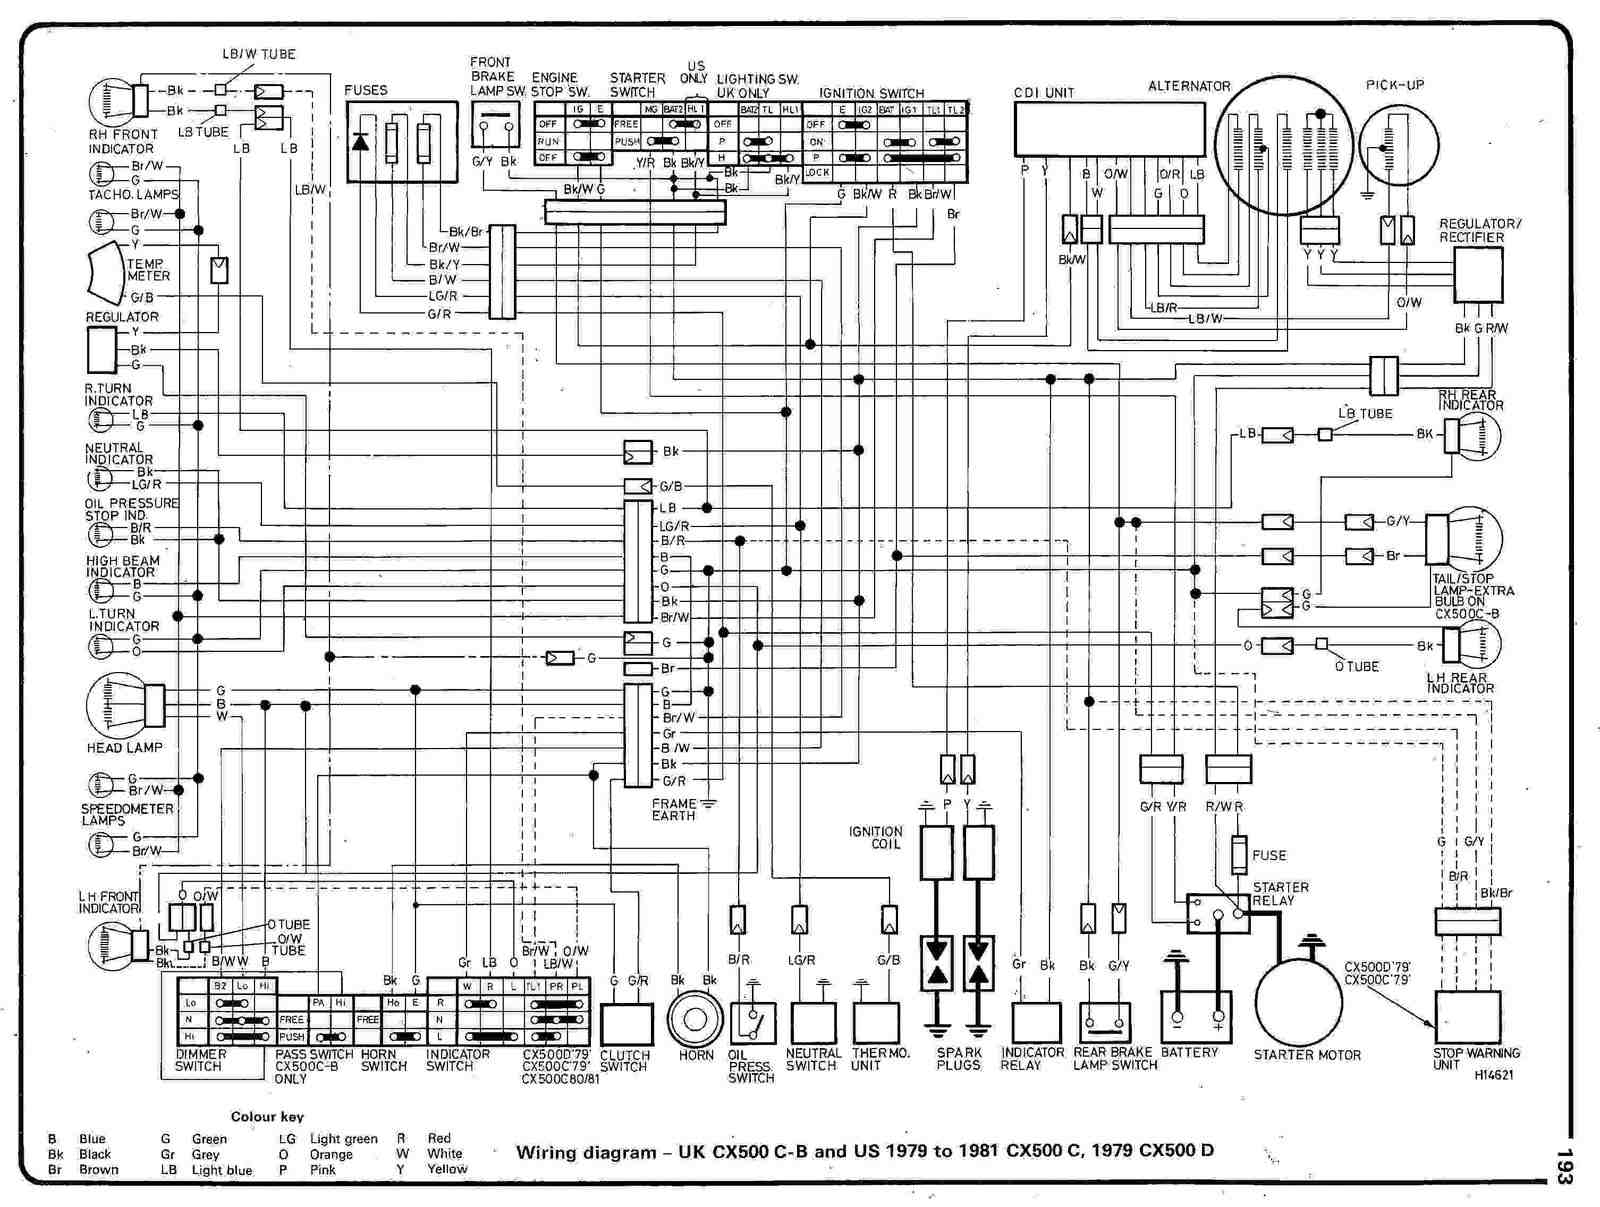 medium resolution of 1979 mustang wiring diagram wiring diagrams img 1999 mustang wiring diagram 1979 mustang wiring diagram